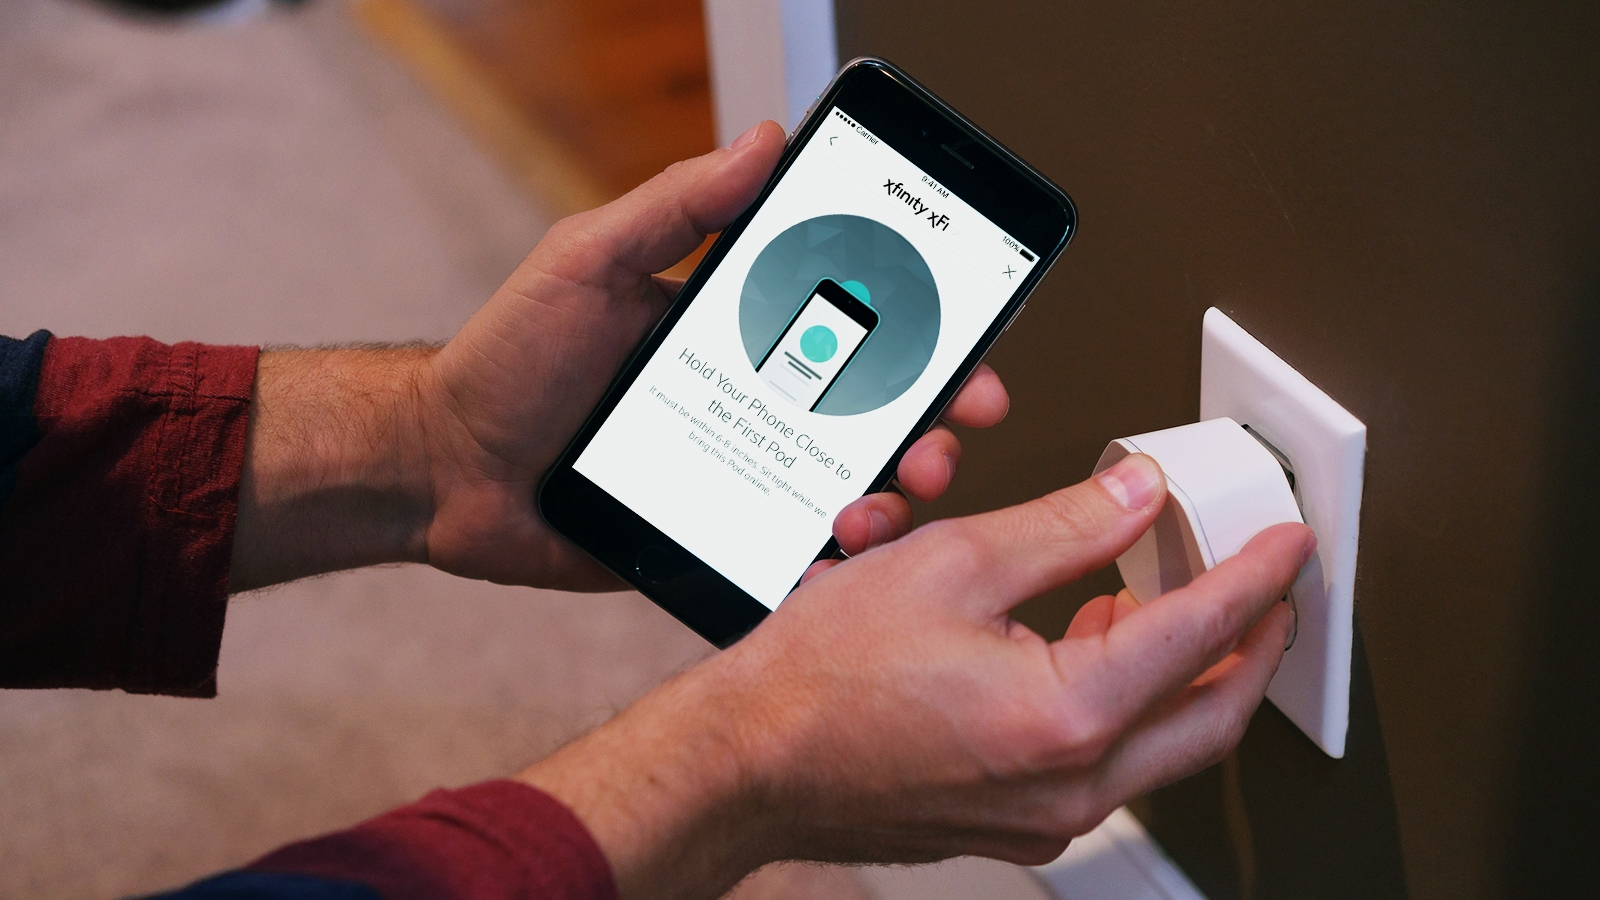 Comcast is now selling mesh WiFi 'pods' to its internet customers | DeviceDaily.com